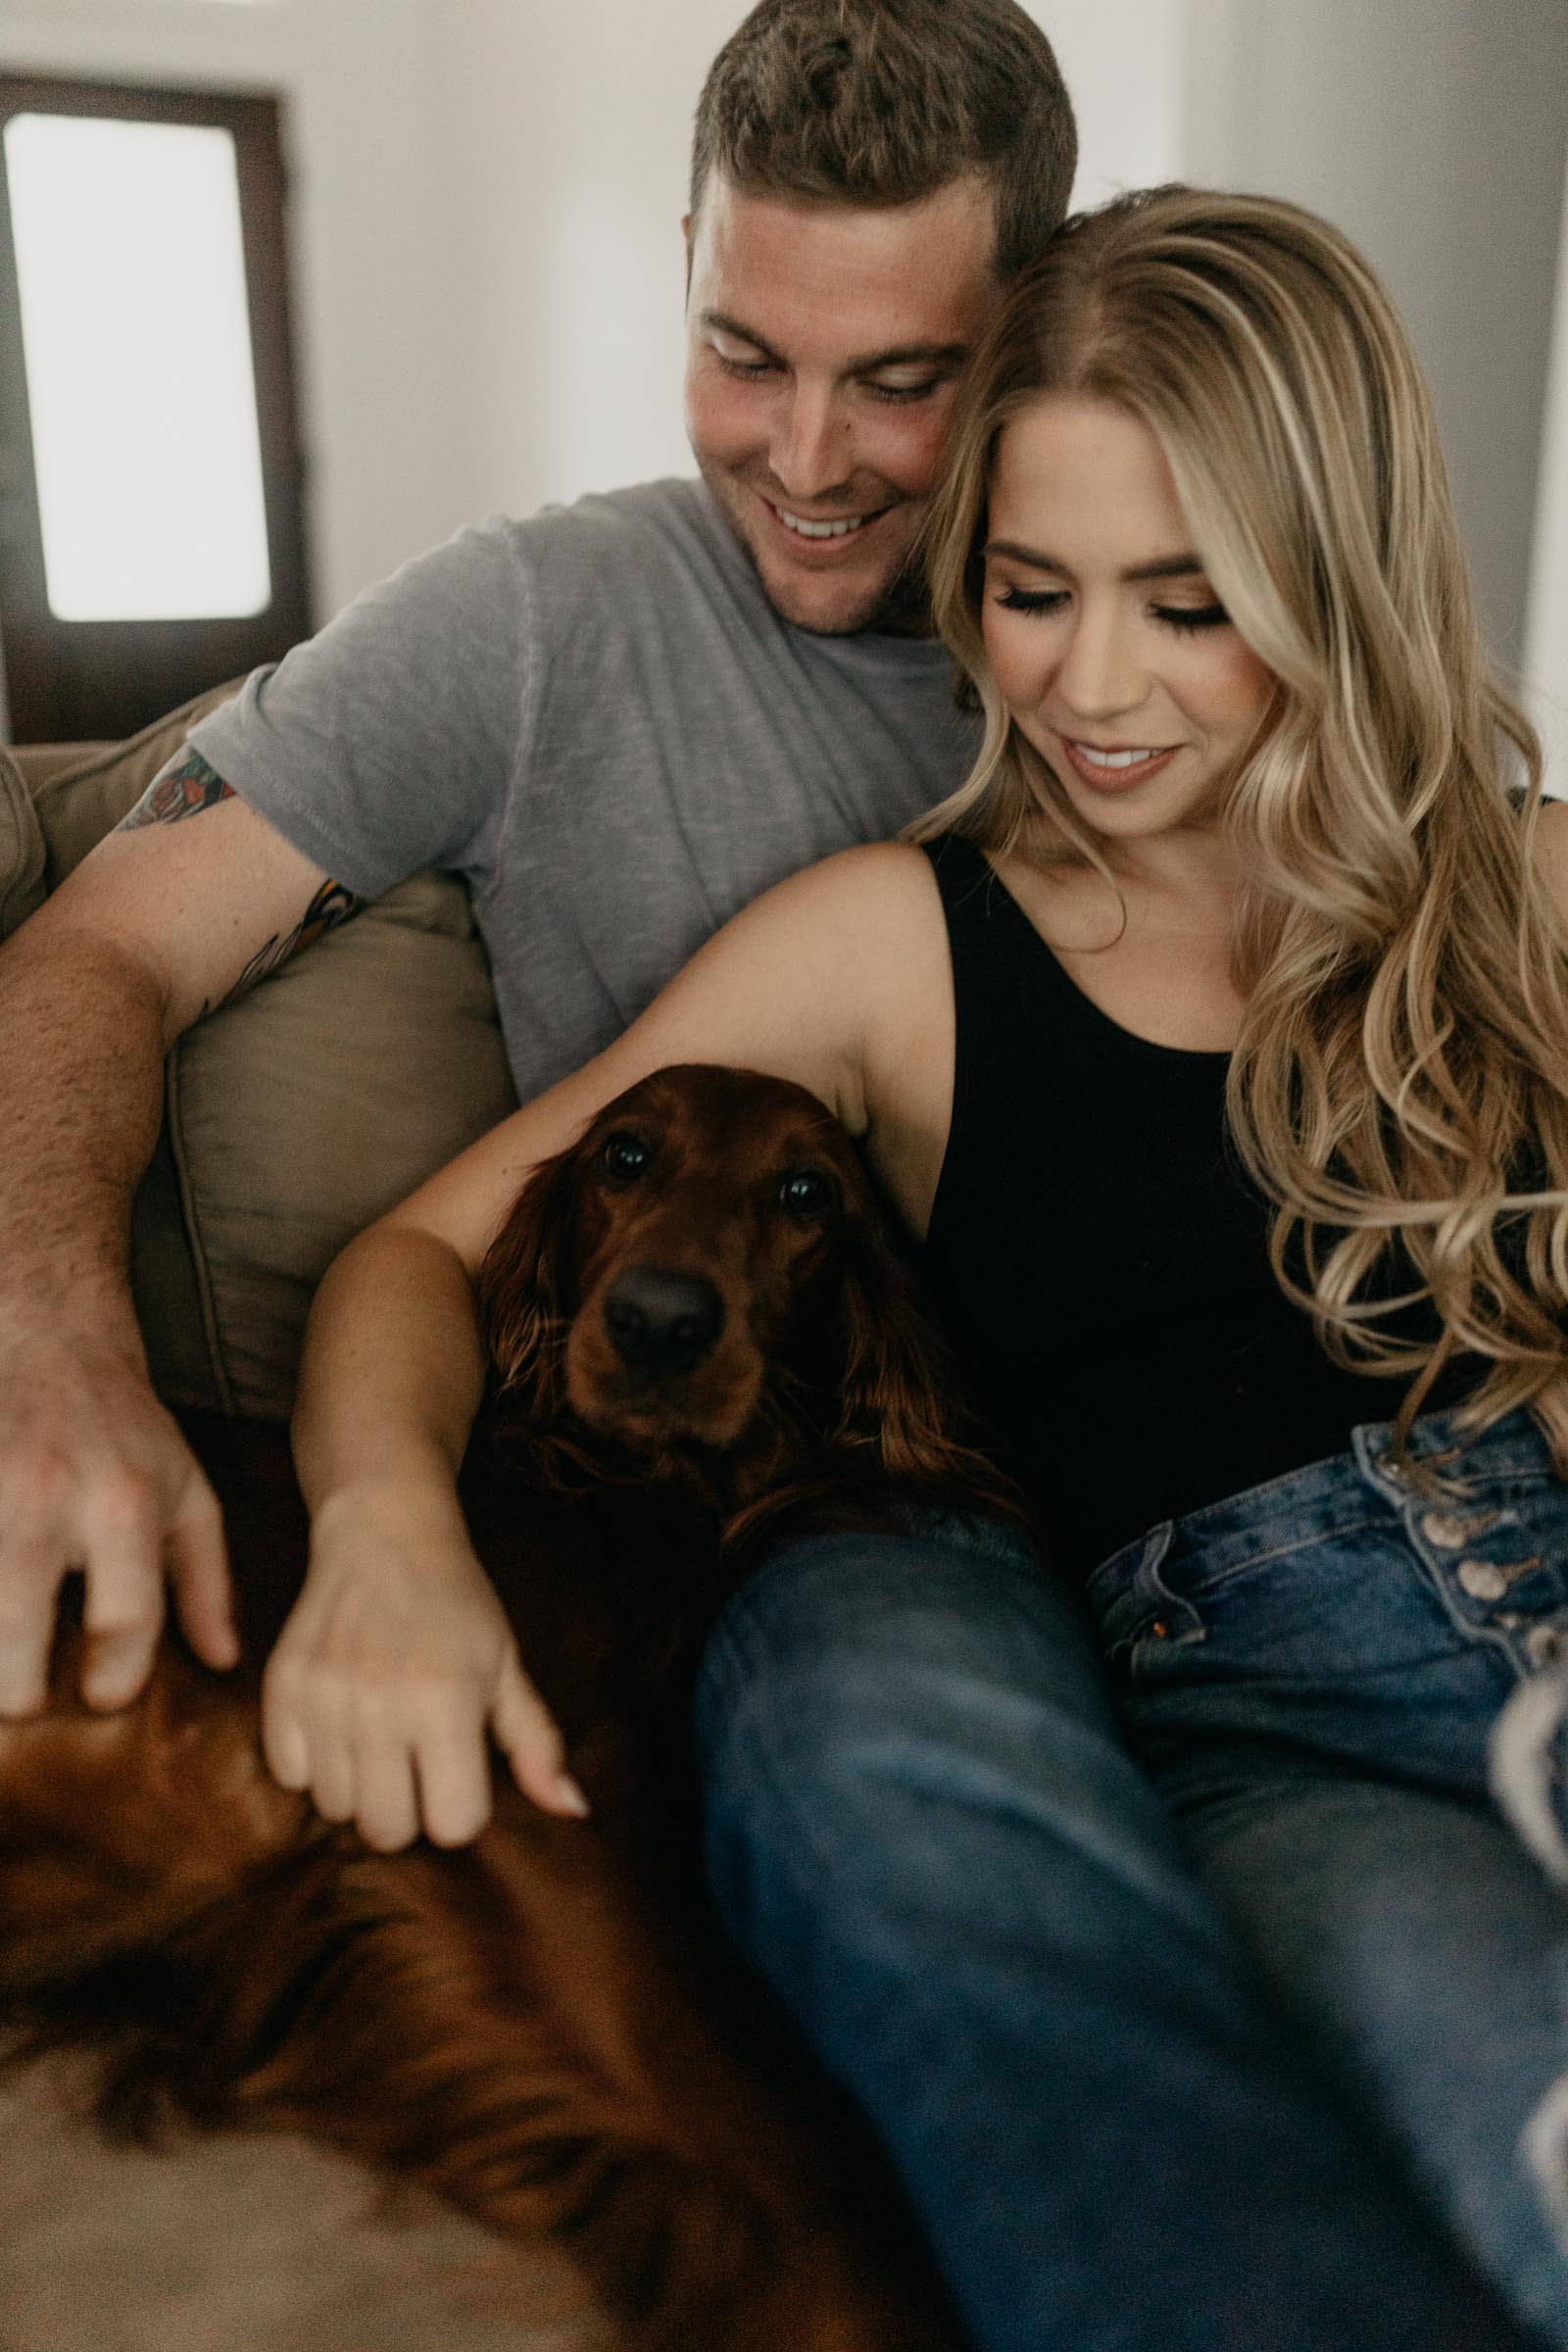 Cute dog getting attention during in home engagement session